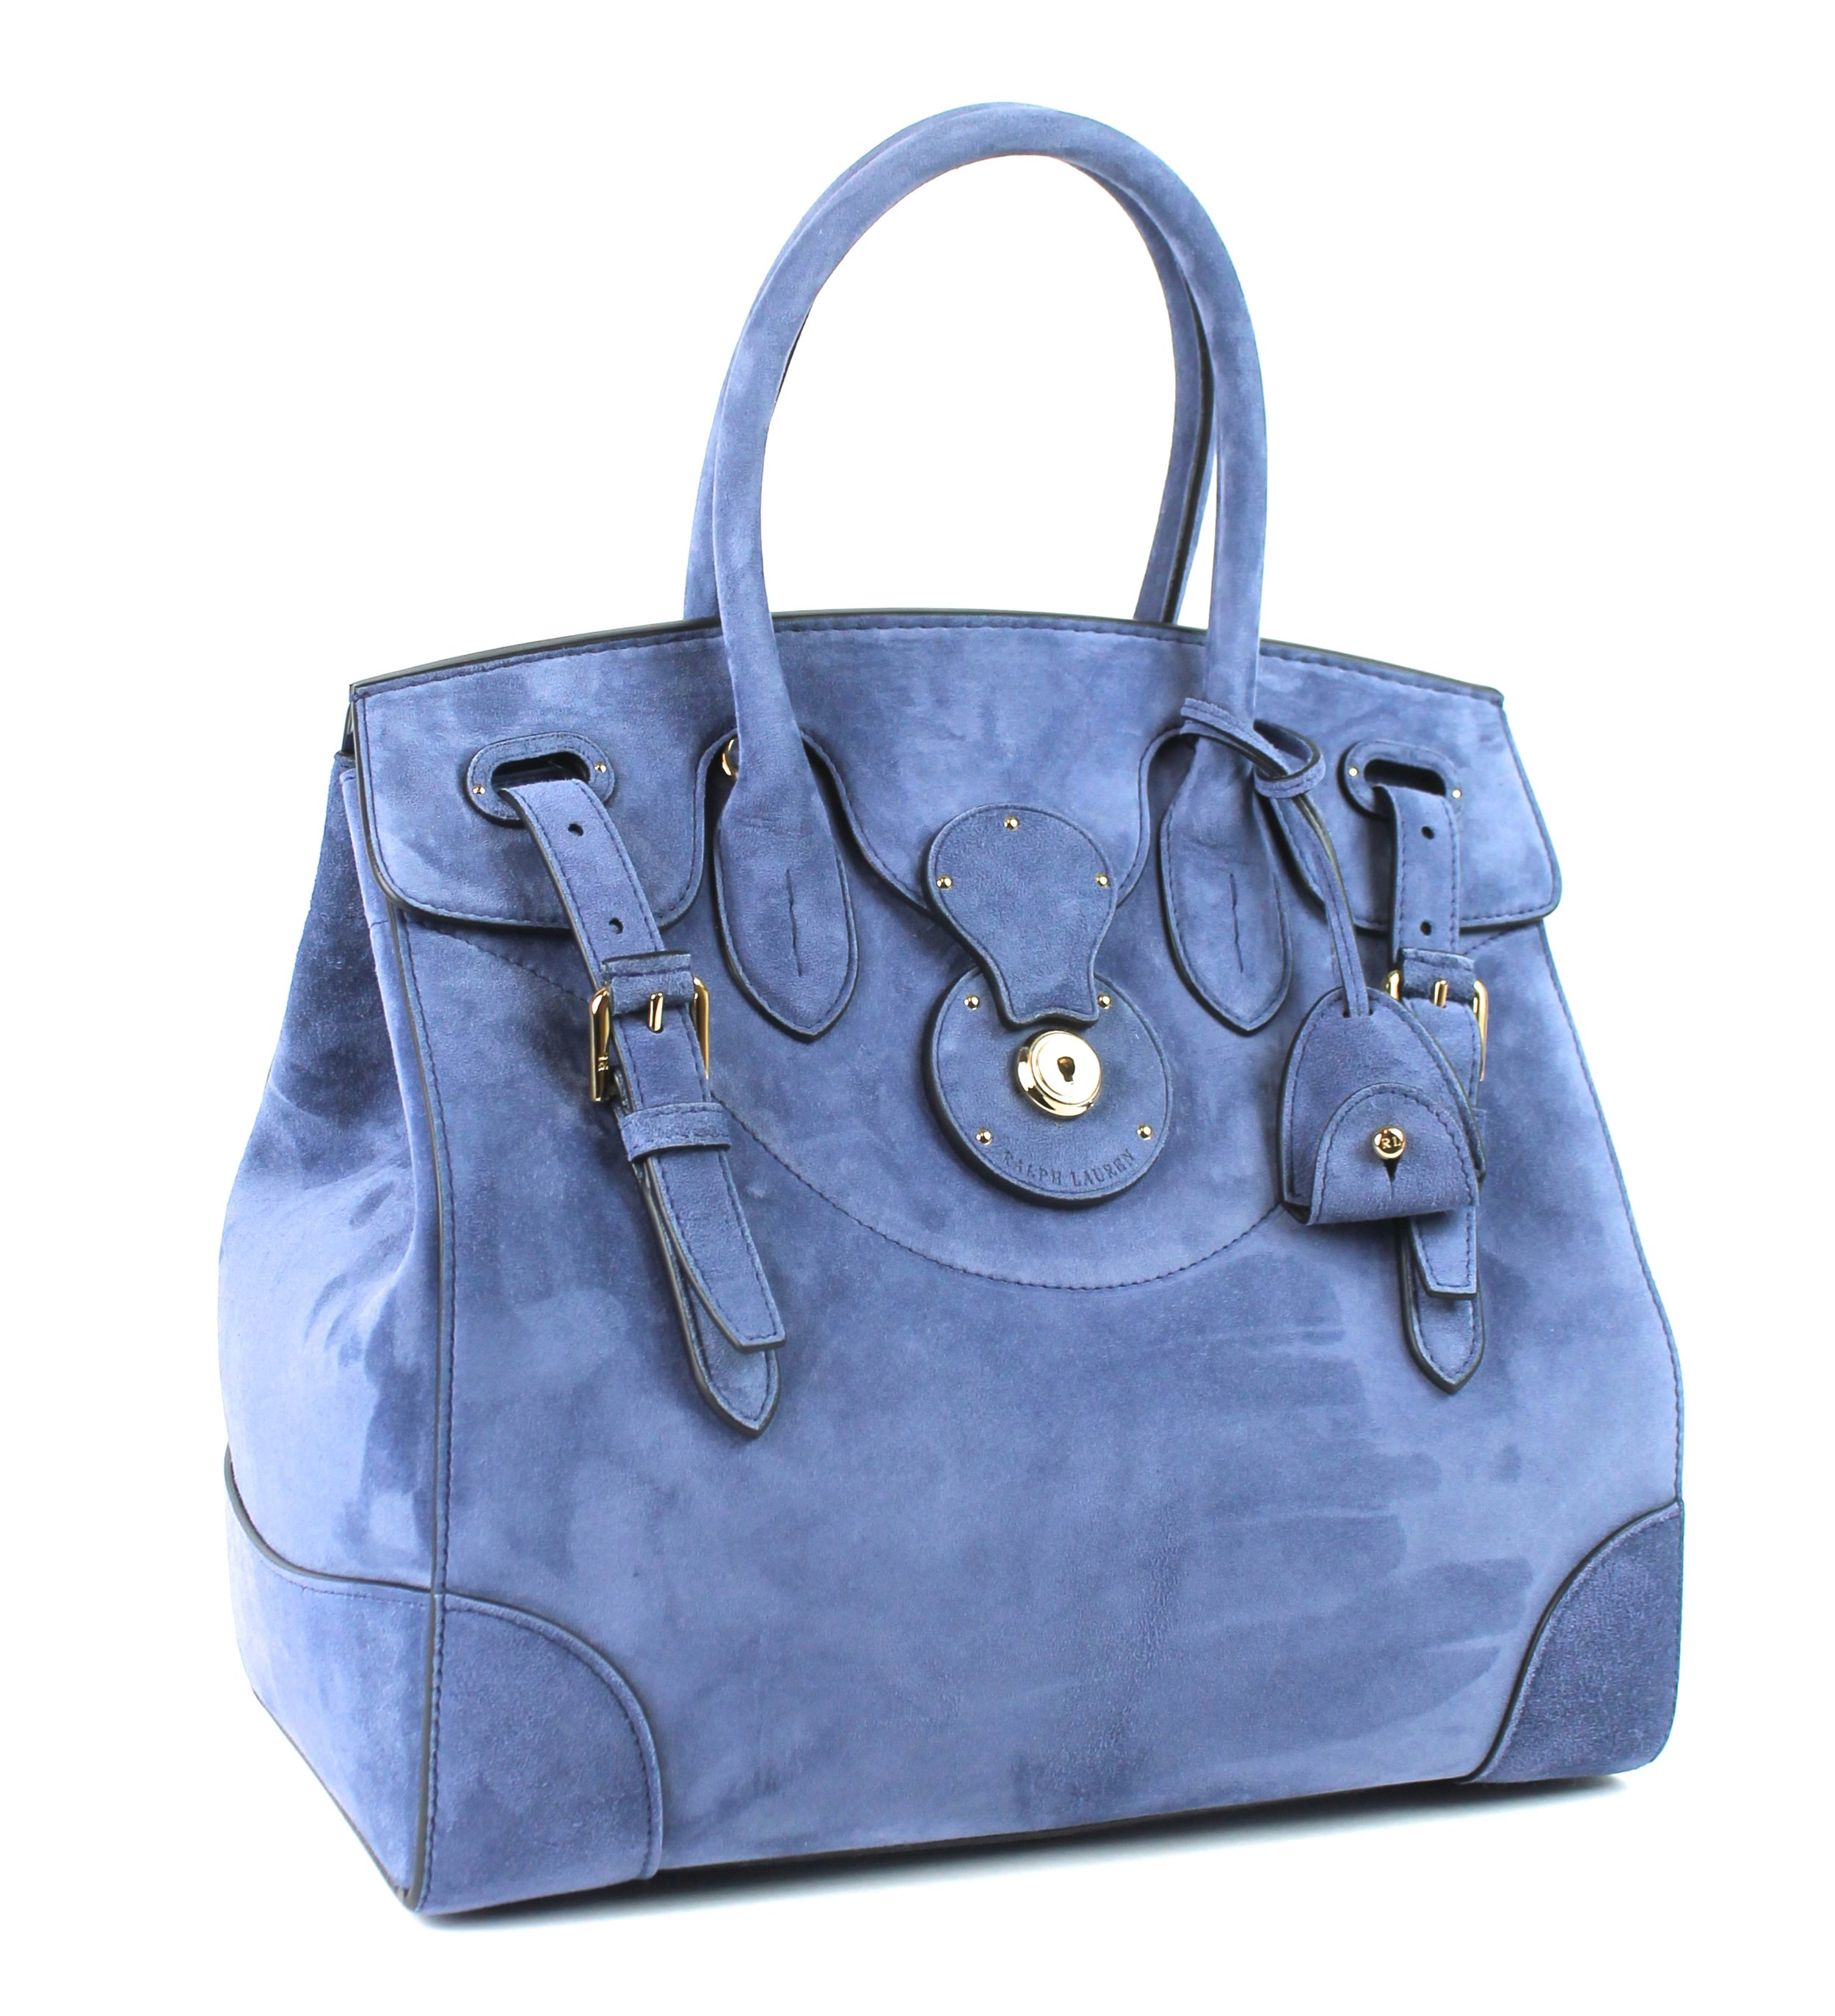 soft ricky 33 cashmere suede night blue 1.jpg